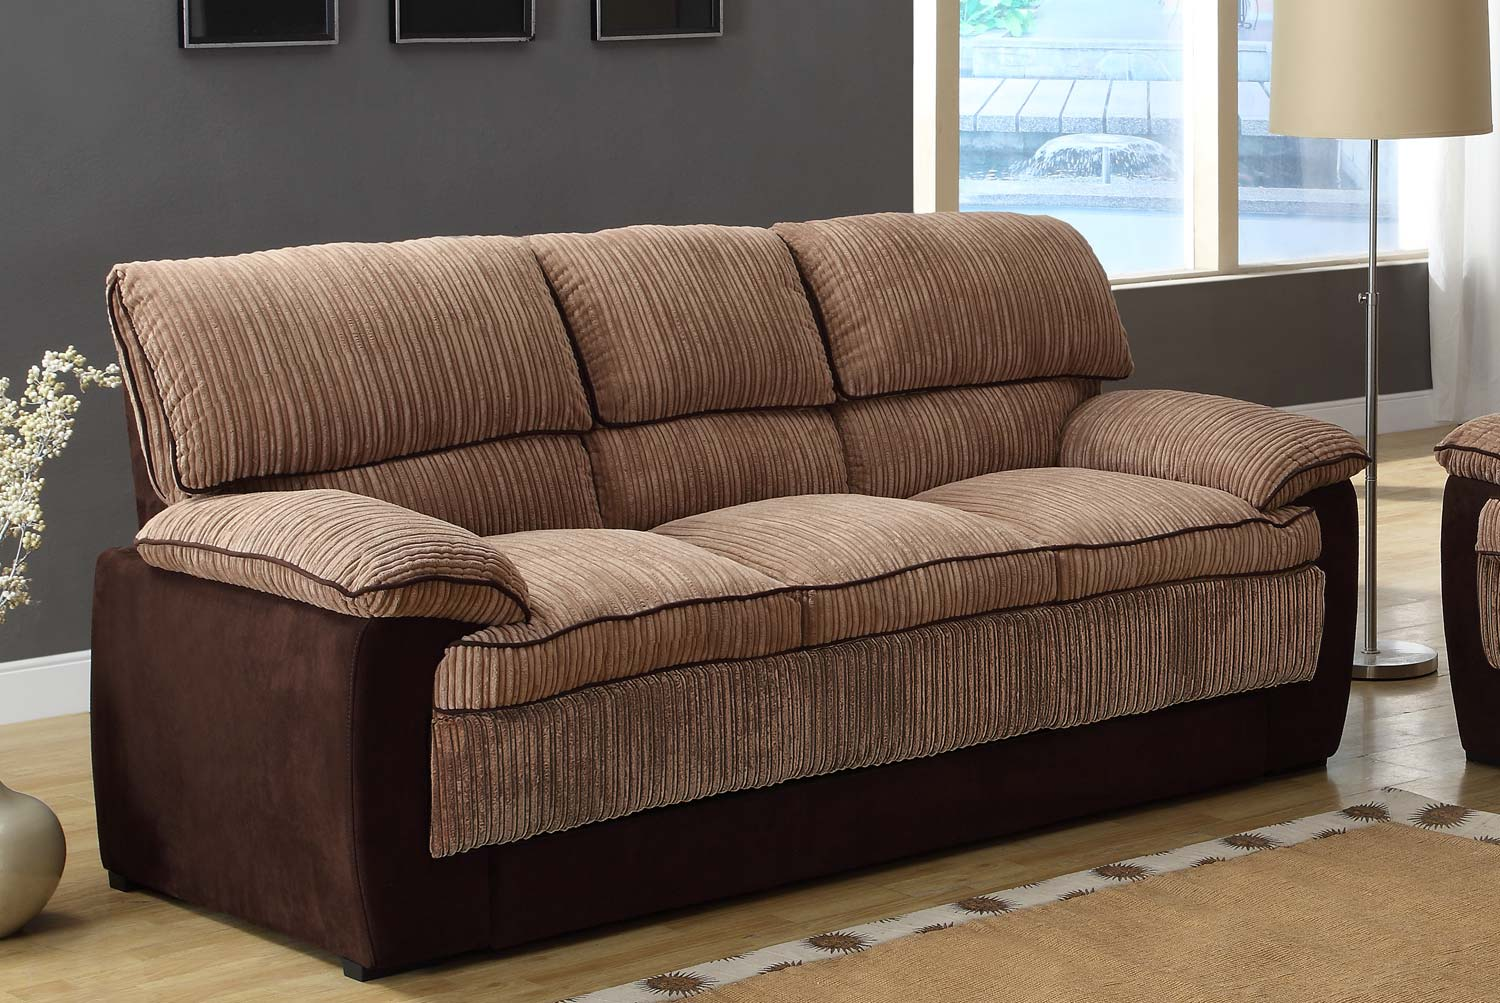 Sectional Sofa Corduroy Recliner Sofa Covers - A Comfortable Look With Elegance